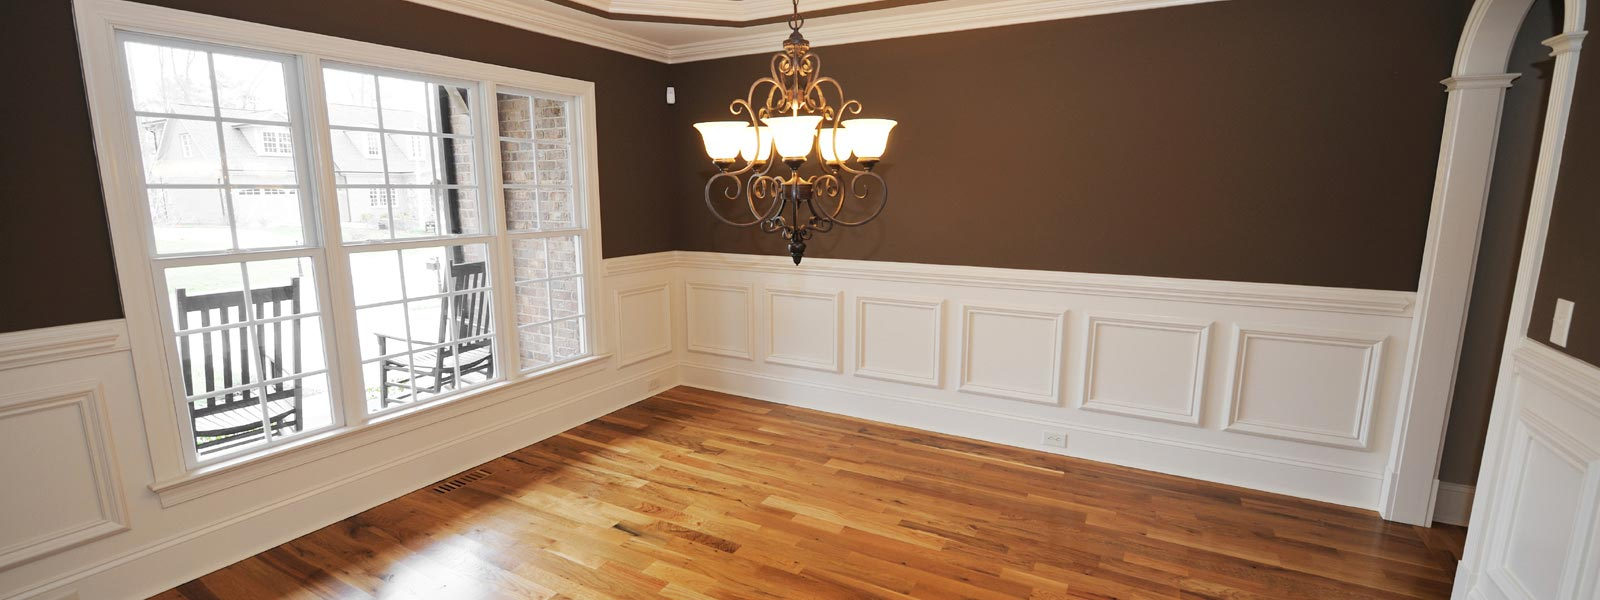 Crown Molding Contractors In Nj Jl Molding Design Llc